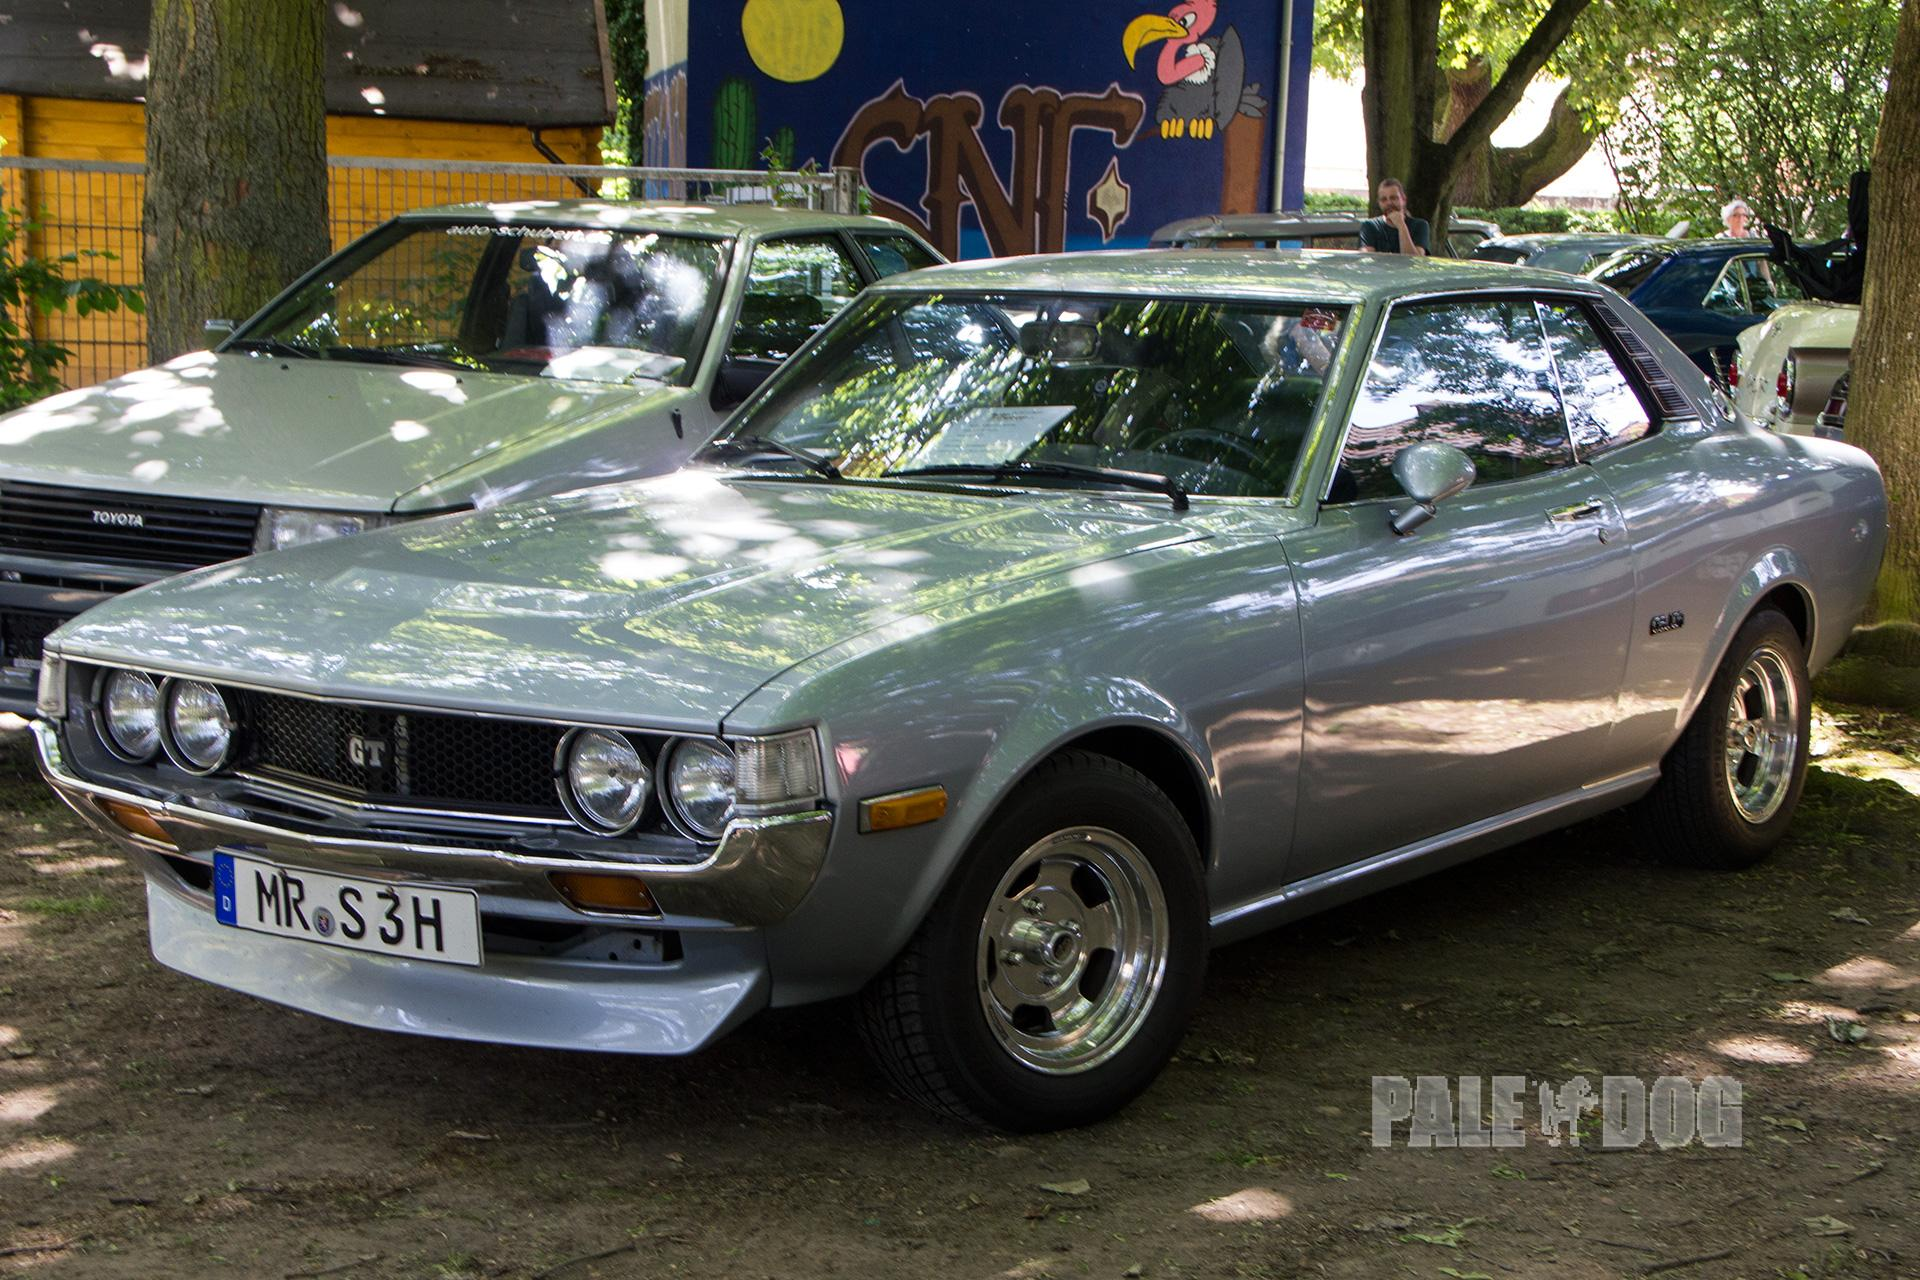 Toyota Paledog Photo Collection 1973 Celica Gt 1977 Front View